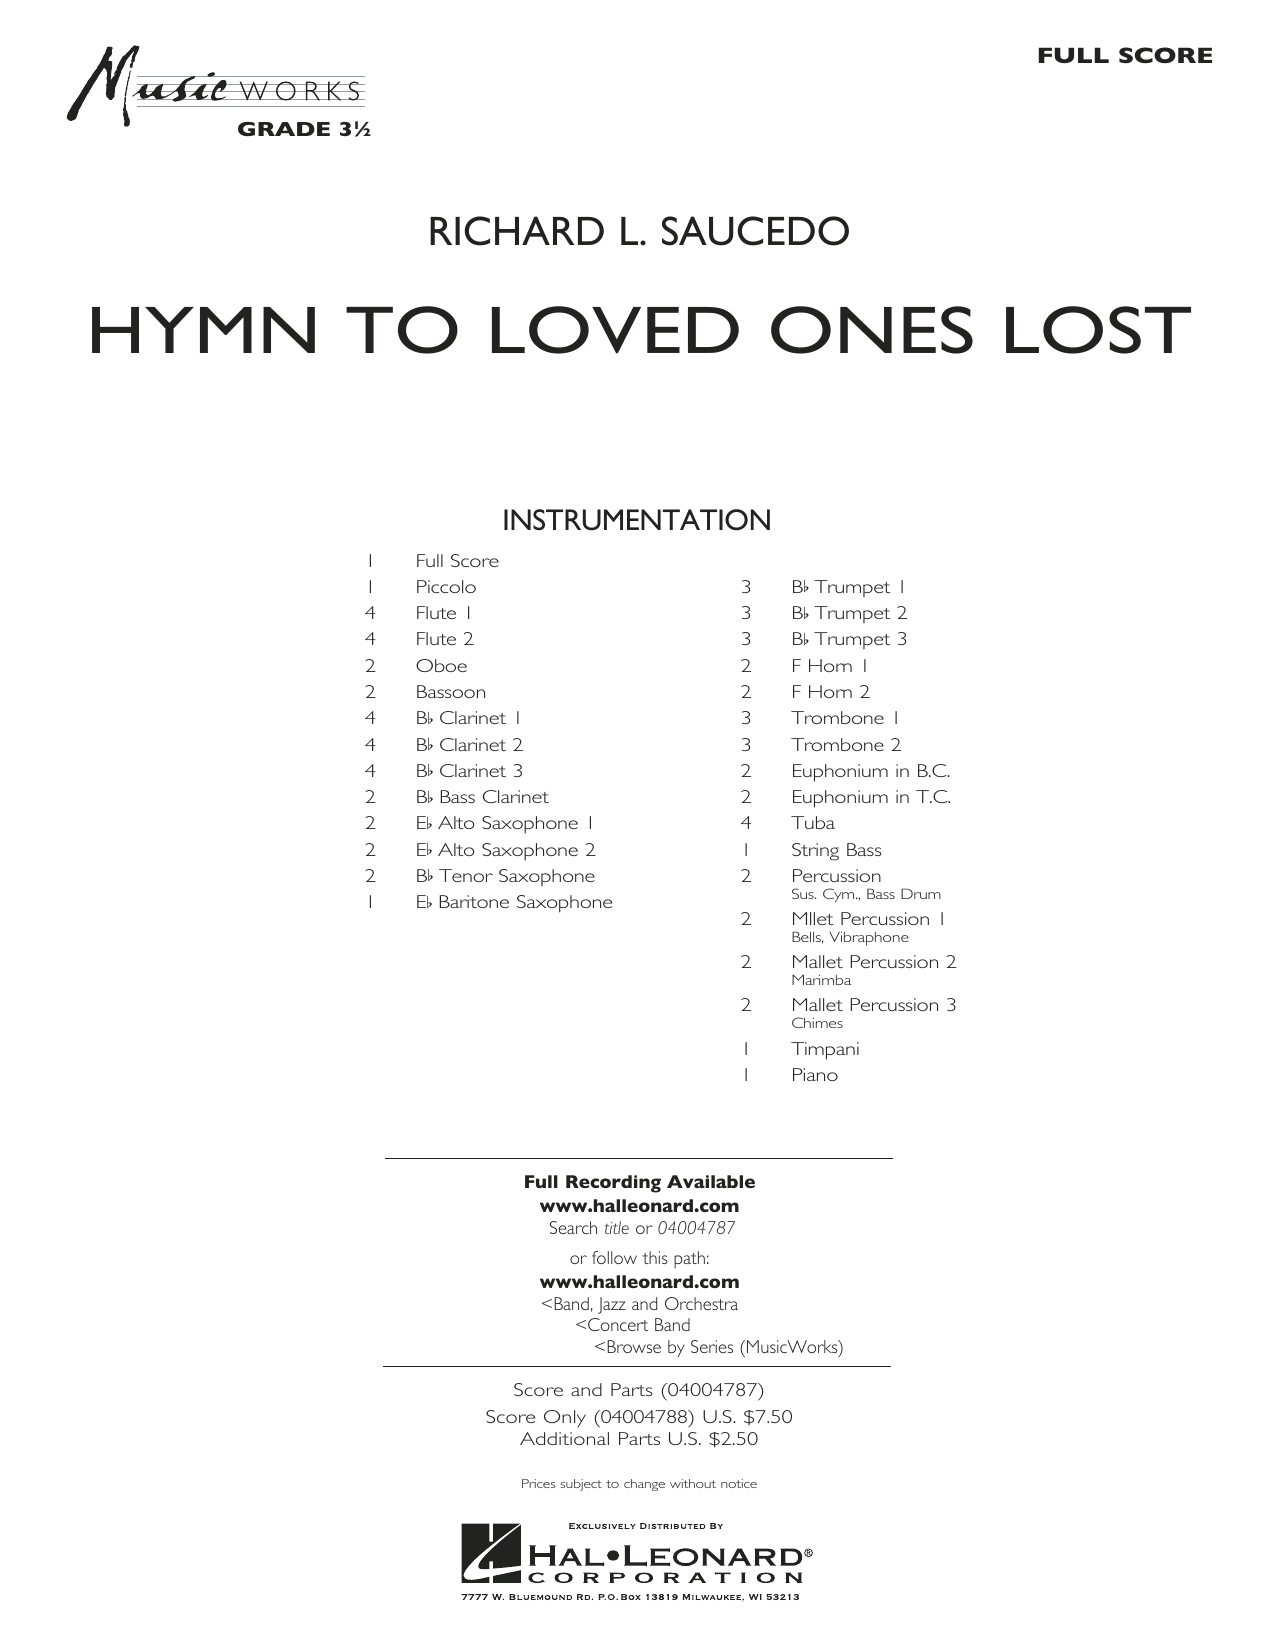 Hymn to Loved Ones Lost - Conductor Score (Full Score) (Concert Band)